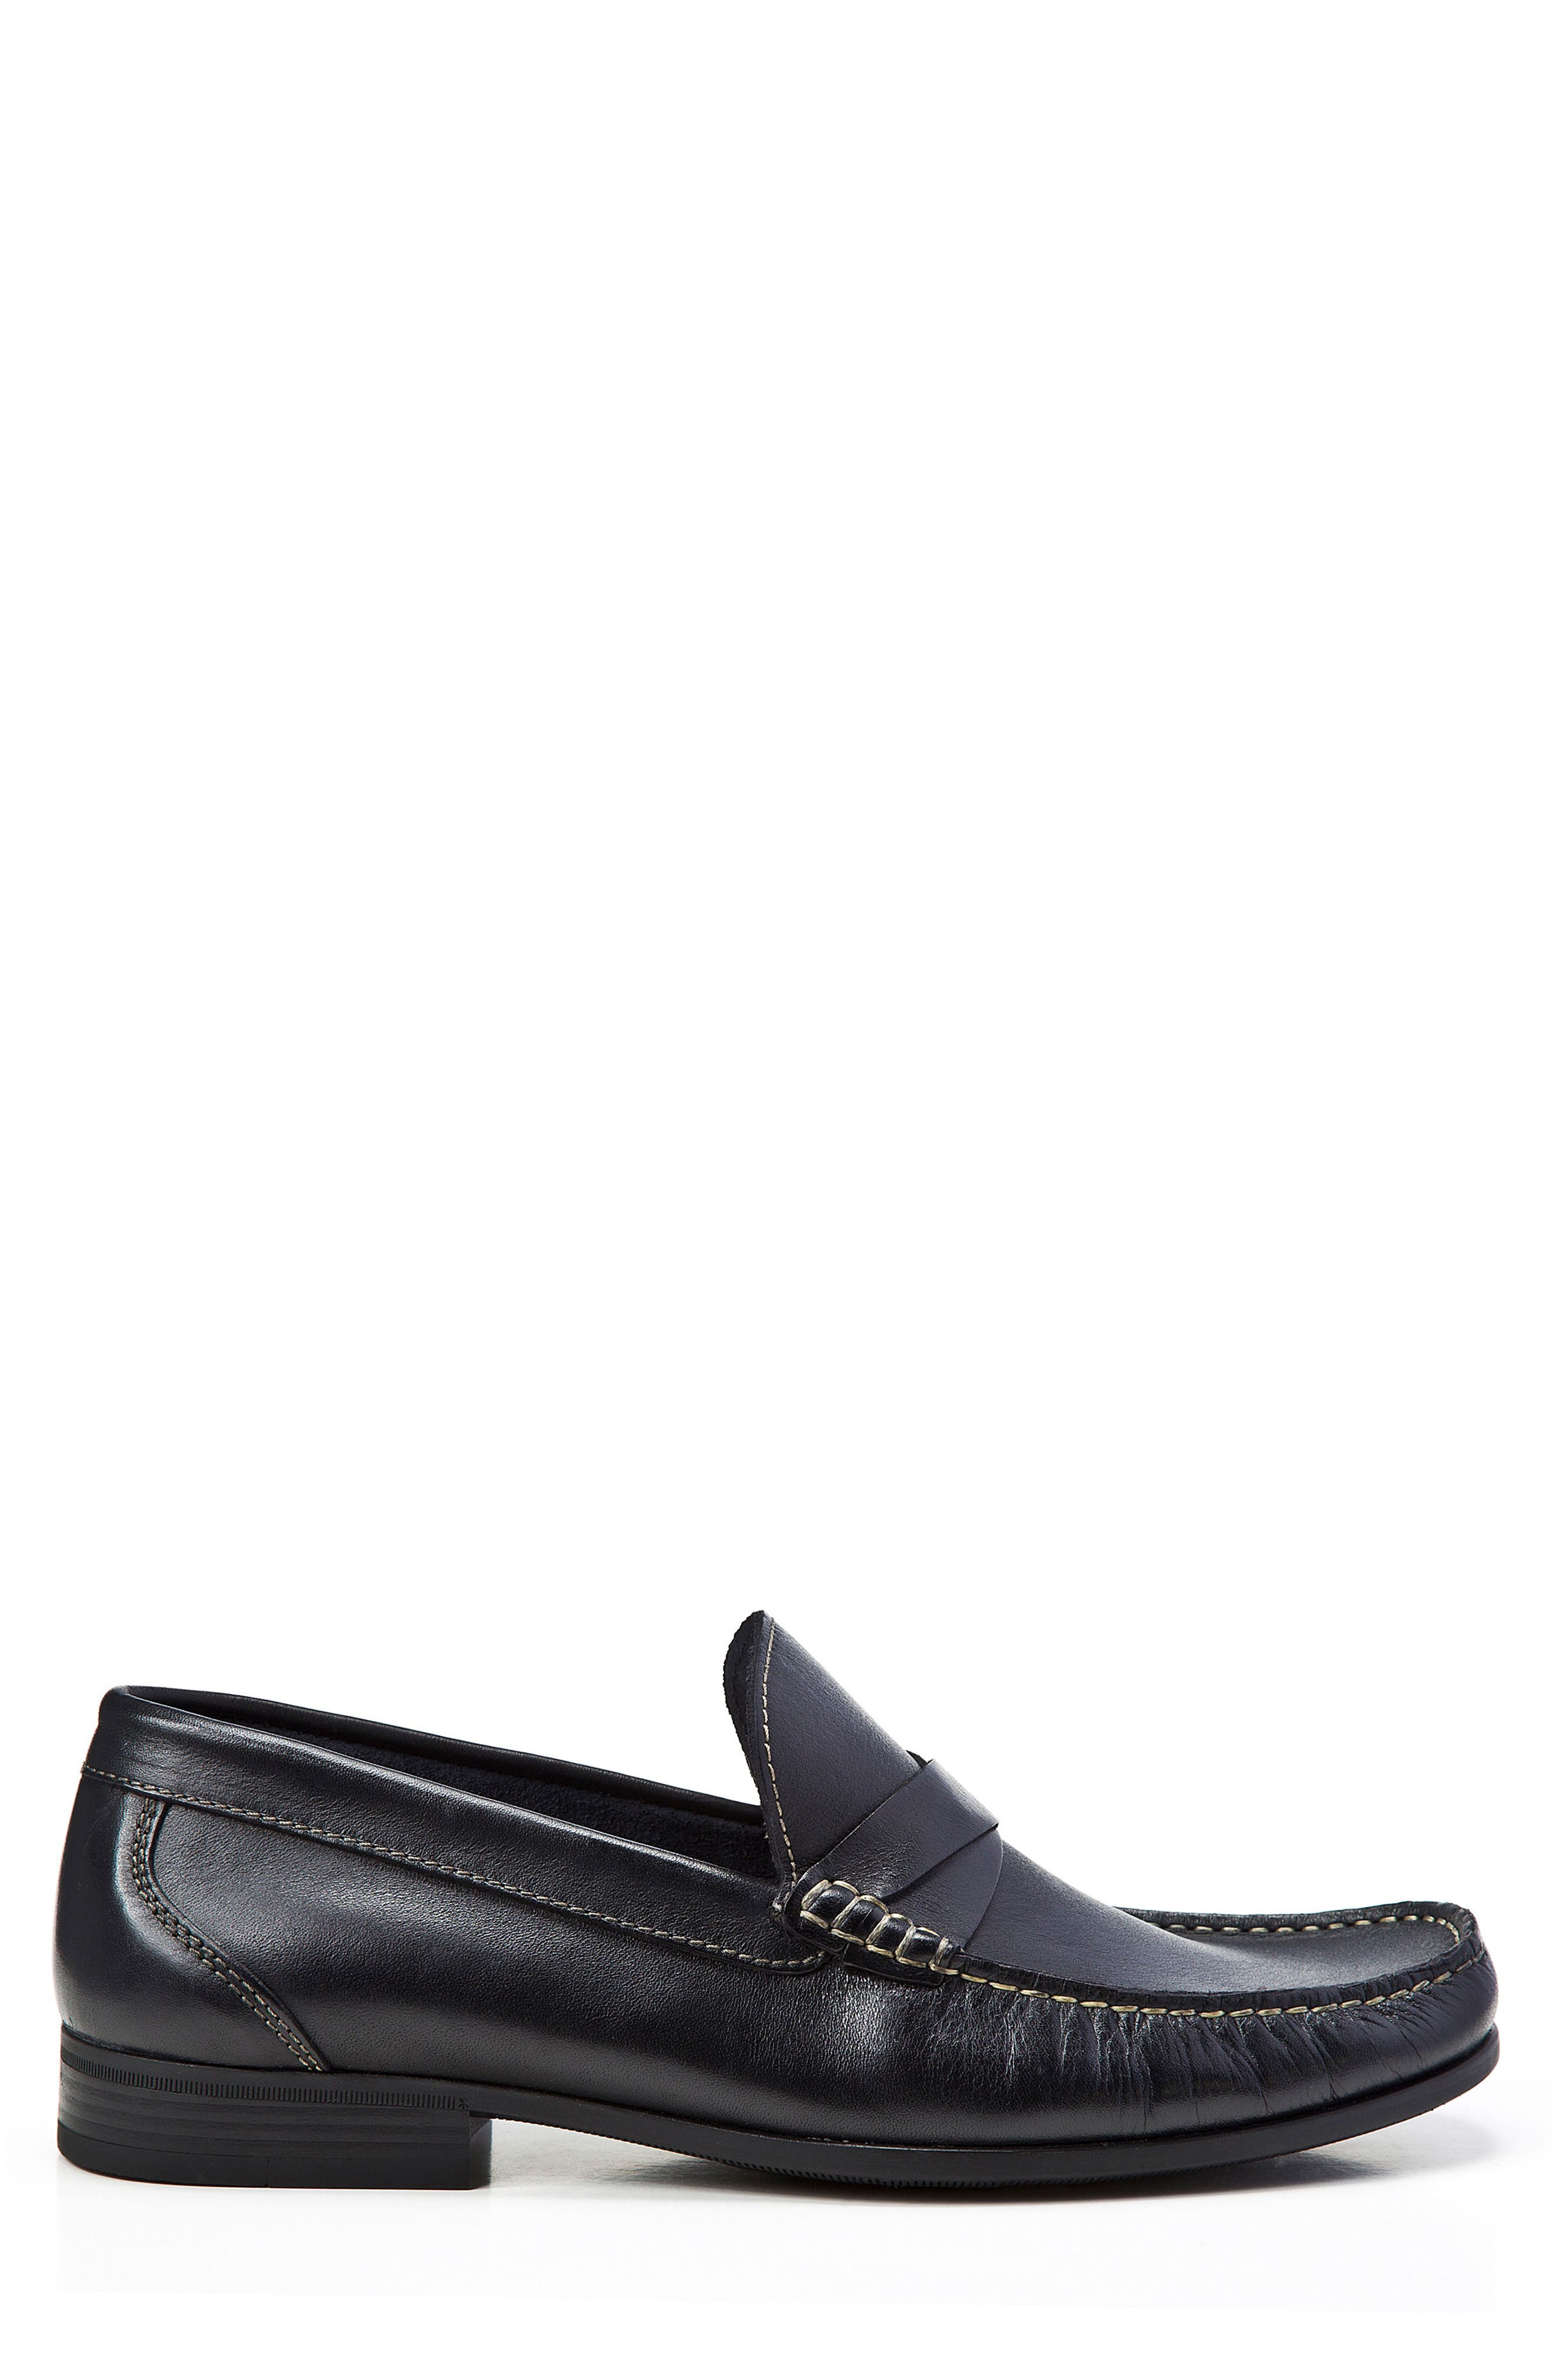 Abruzo Cross Strap Loafer,                             Alternate thumbnail 3, color,                             BLACK